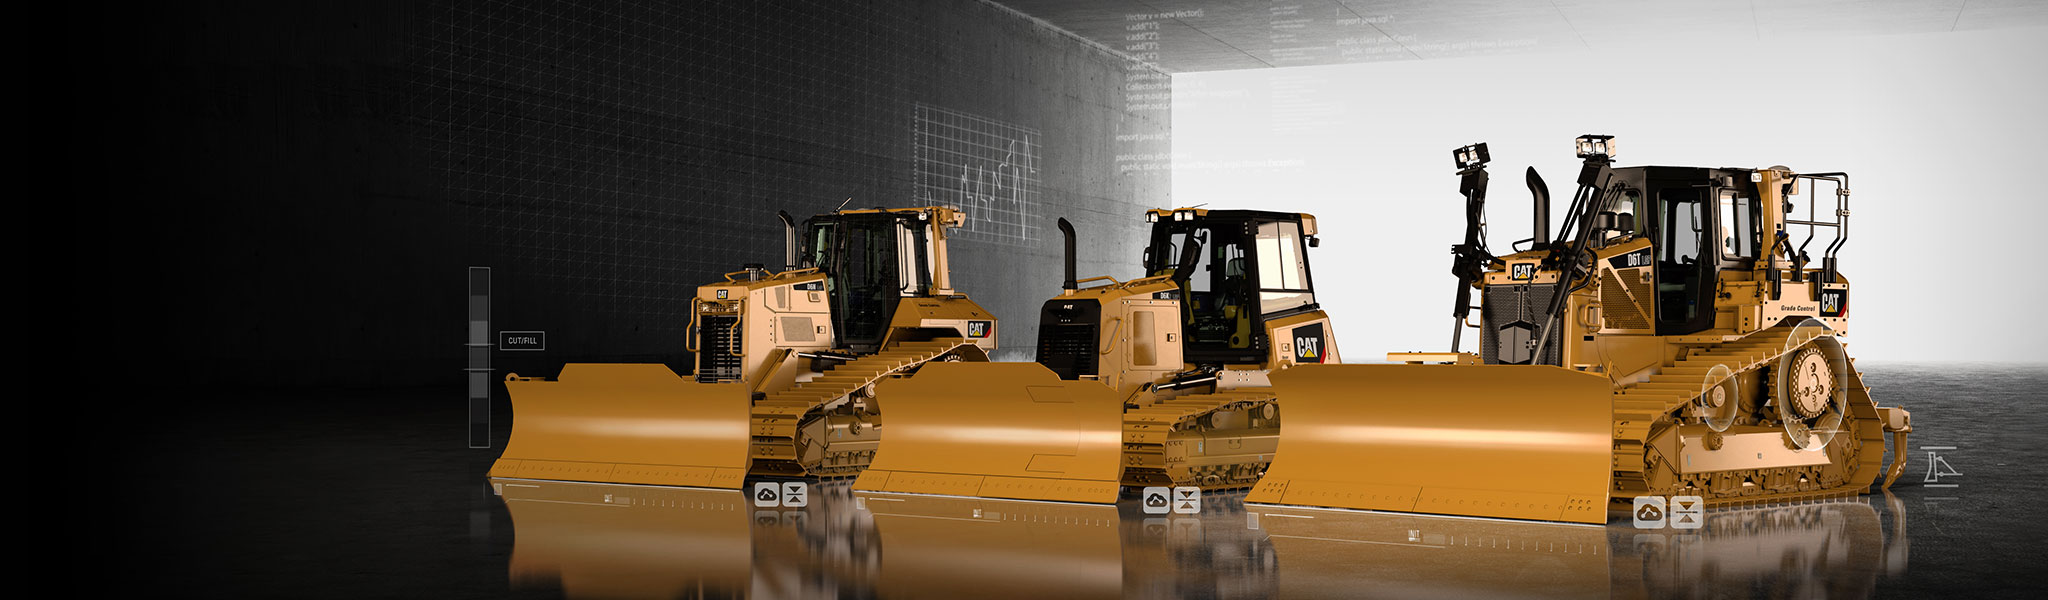 Caterpillar Dozer Product Family